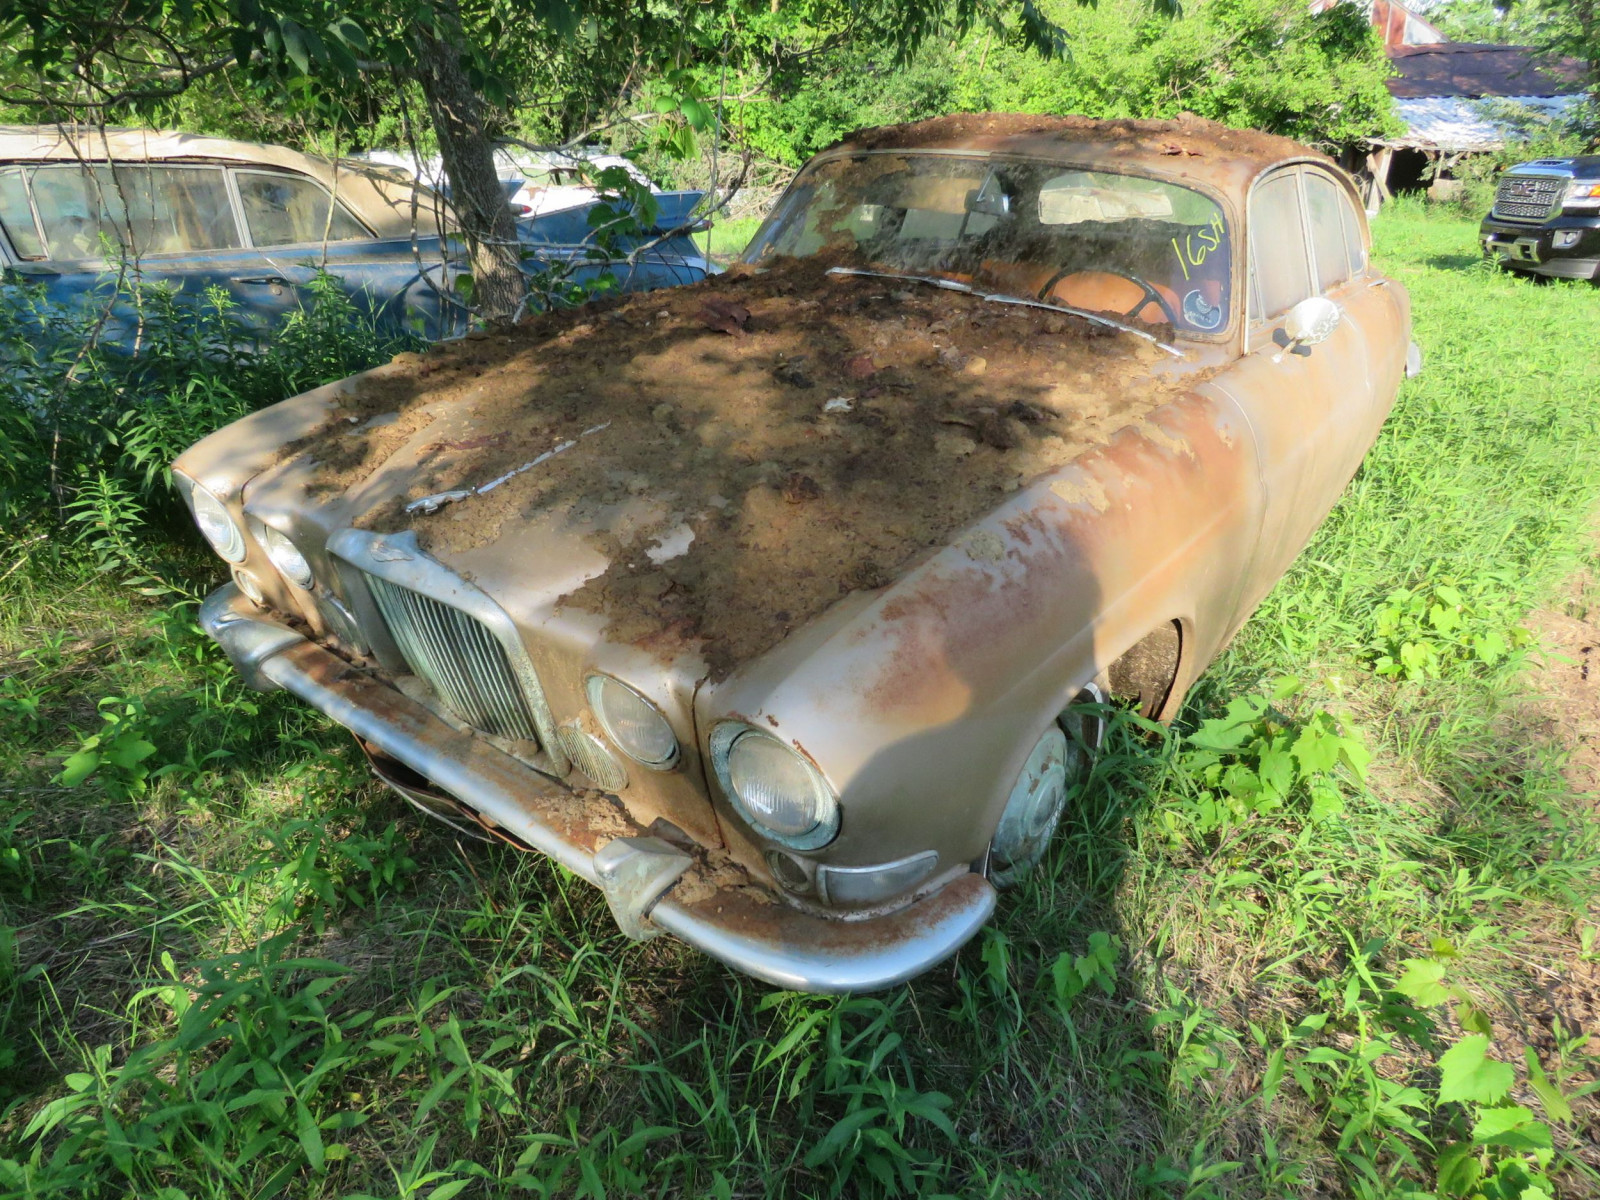 1966 Jaguar 4.2 4dr Sedan - Image 1